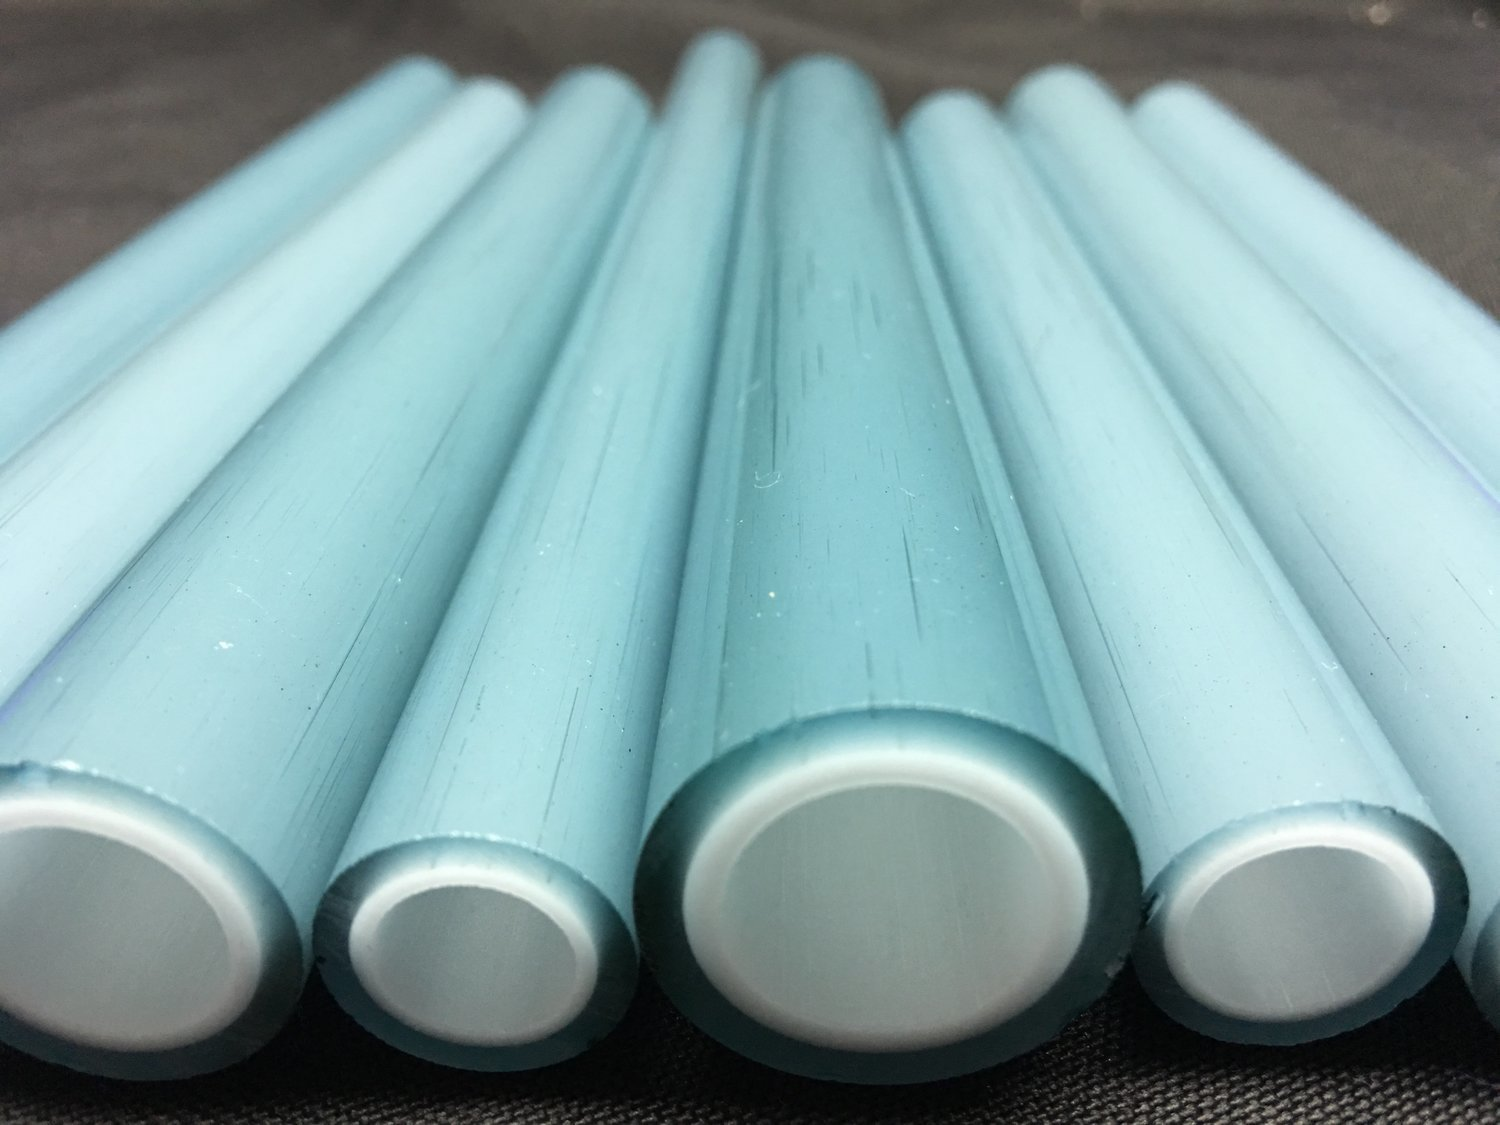 DayGlow over Star White Double Layer Boro Tubing